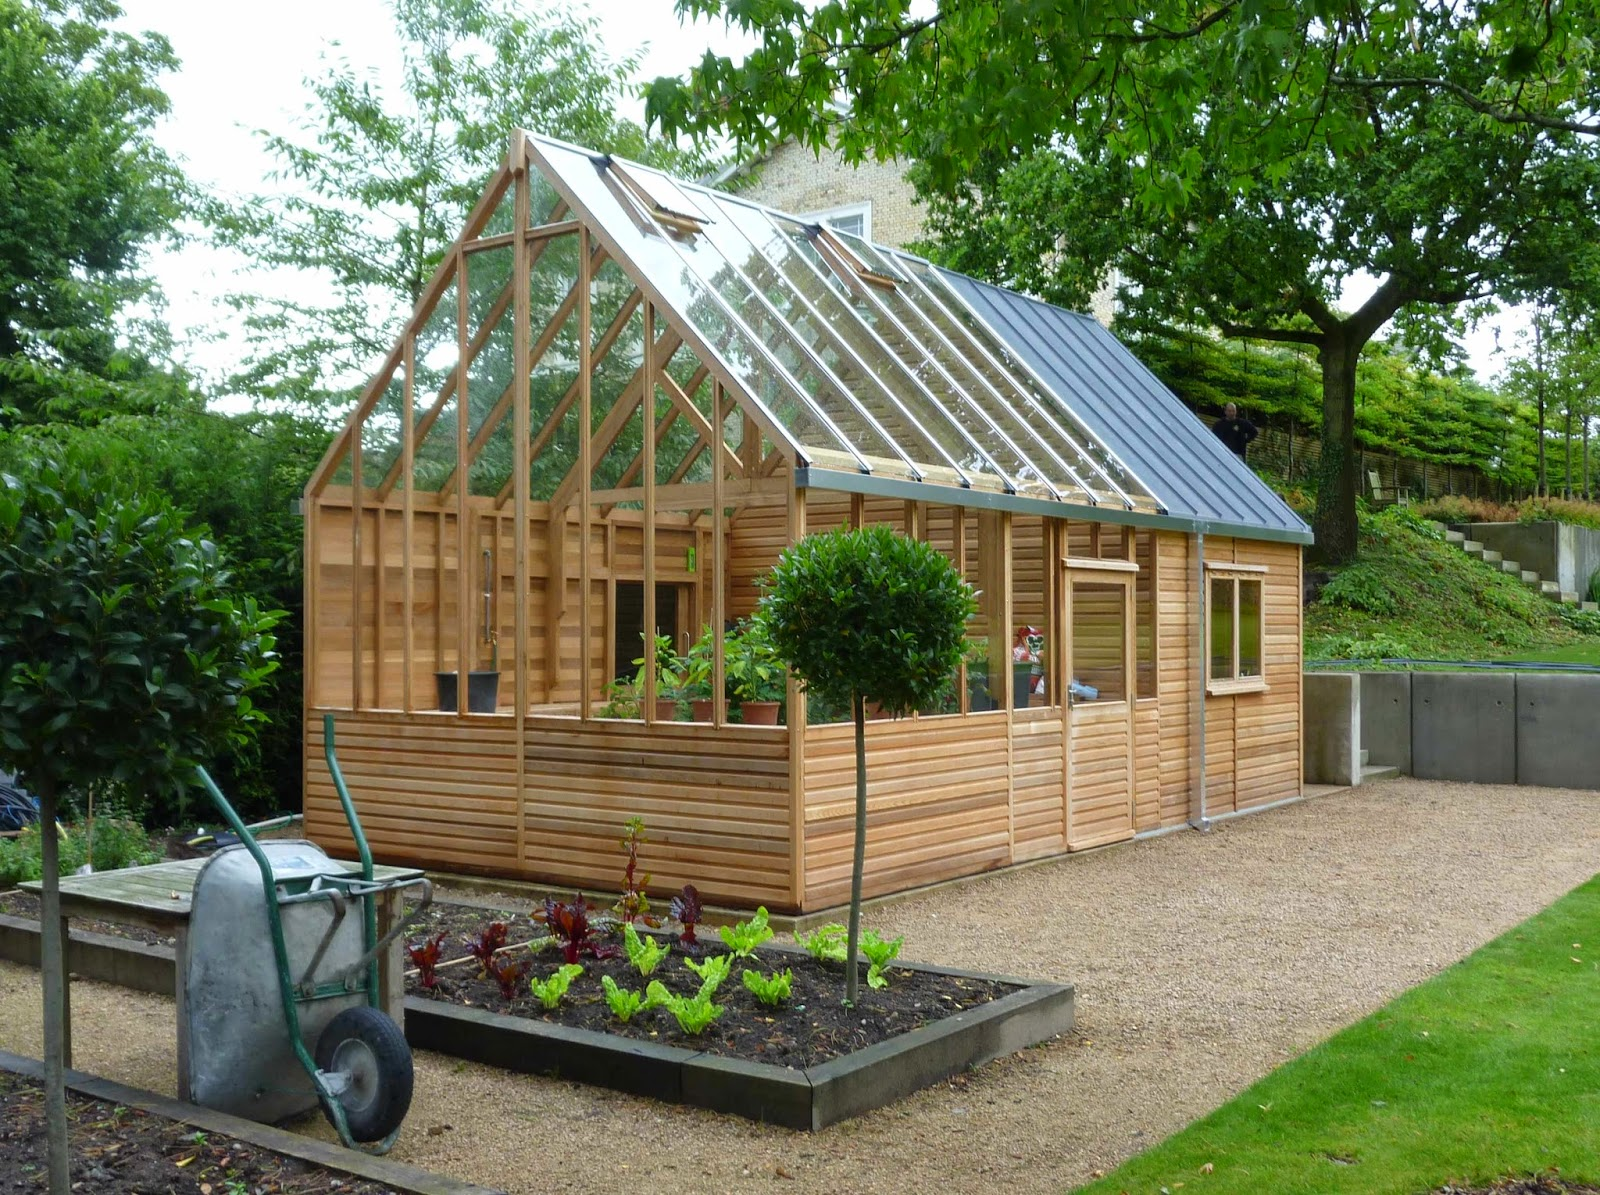 13 great diy greenhouse ideas instant knowledge for Home garden greenhouse design